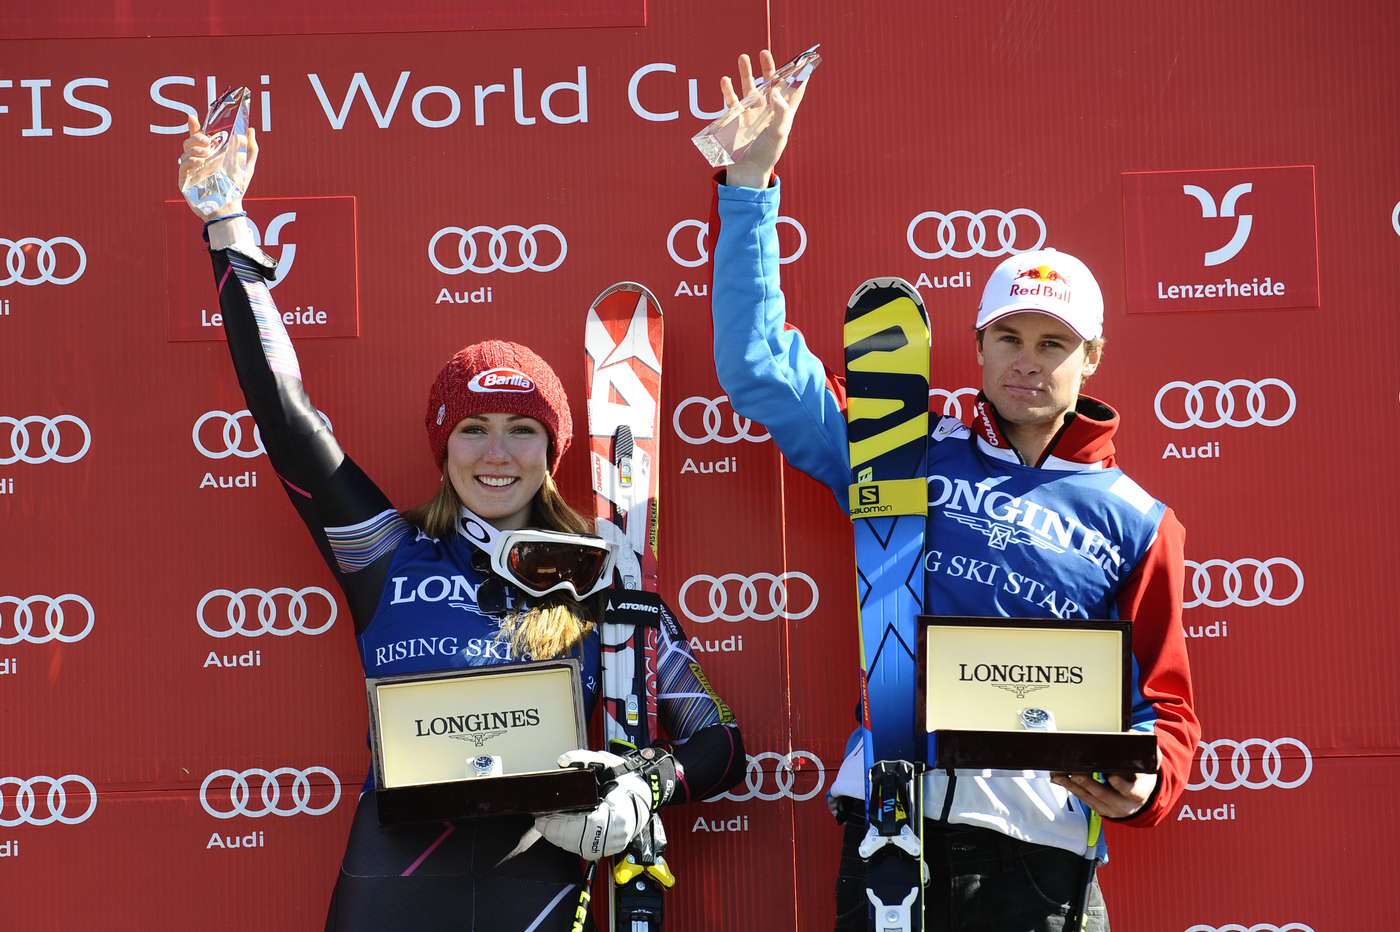 Longines Alpine Skiing Event: Mikaela Shiffrin and Alexis Pinturault are the Longines Rising Ski Stars 2013/2014 3